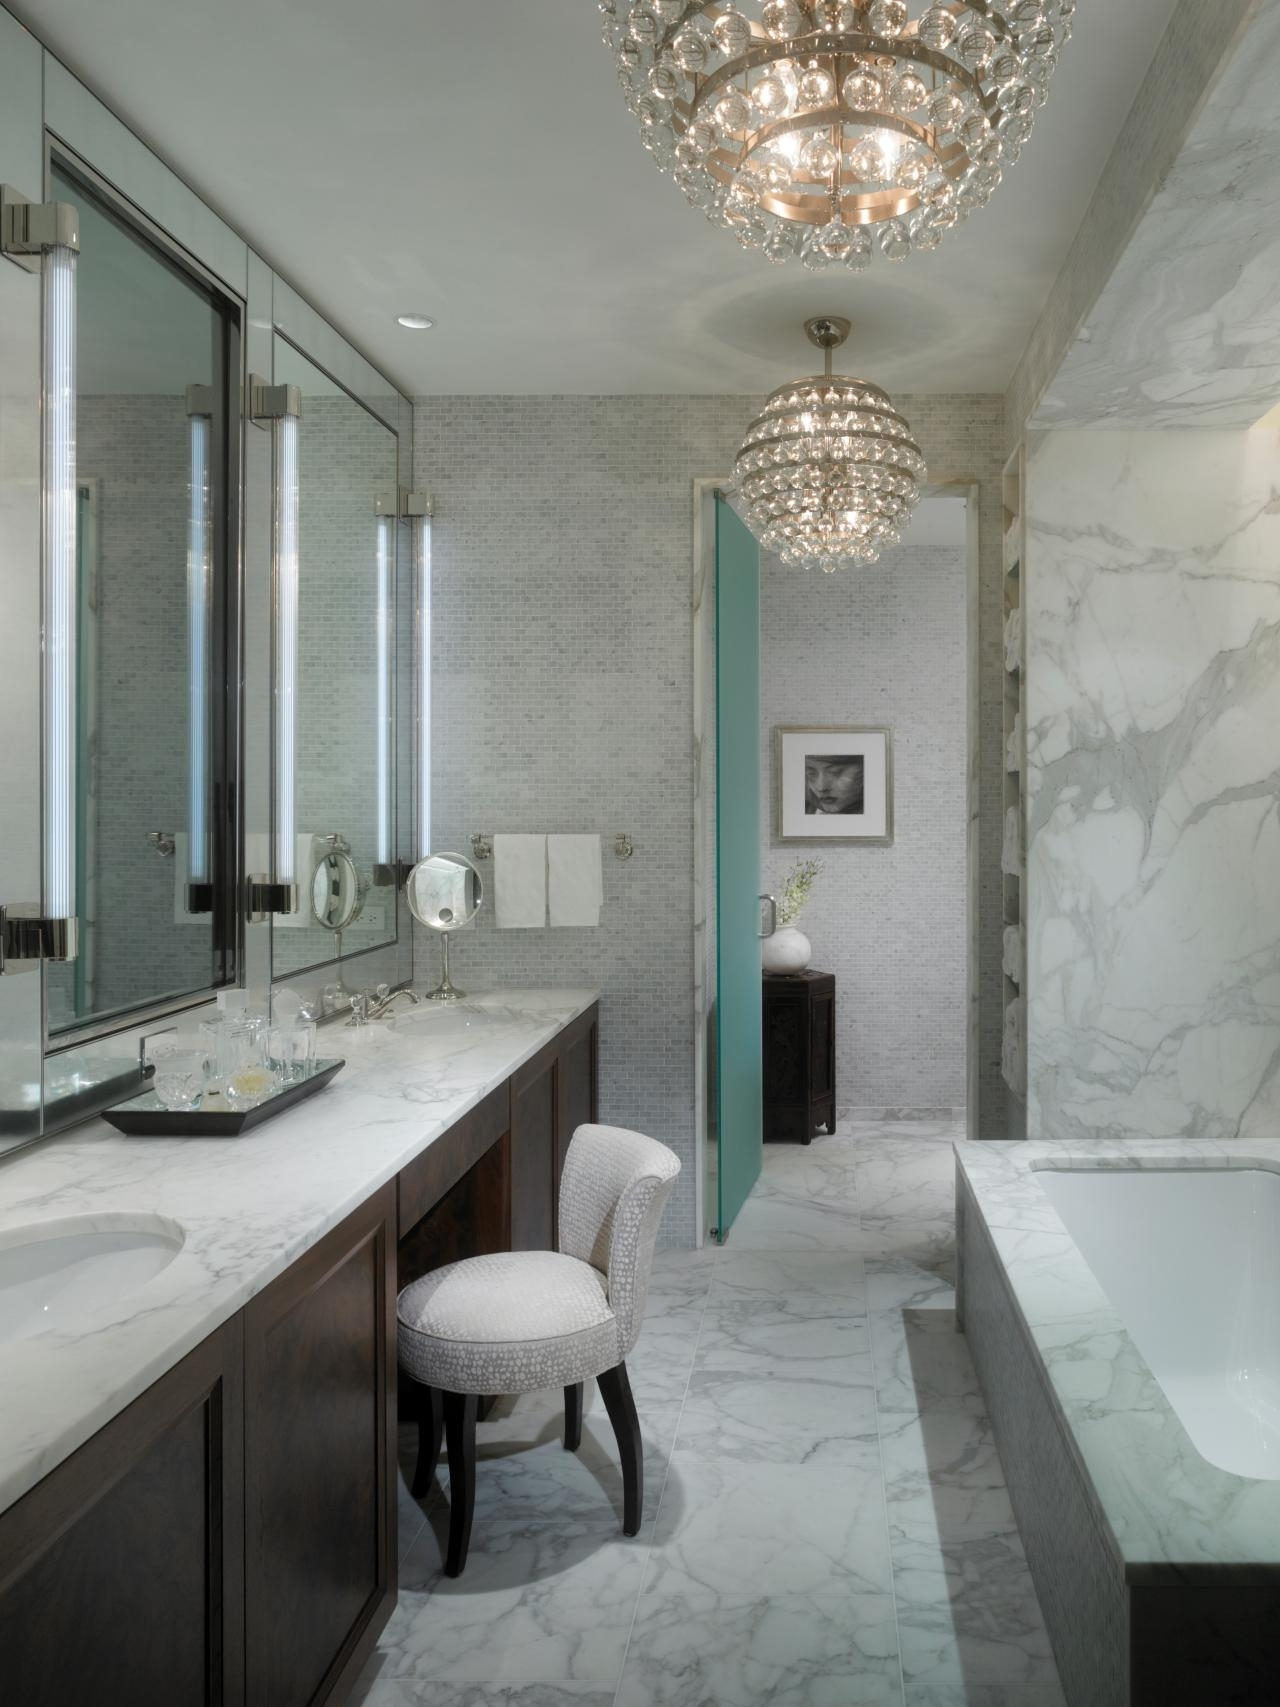 Modern Bathroom Chandelier Lighting Regarding Most Up To Date Beautiful Small Bathroom Chandelier Ideas – Find Furniture Fit For (View 13 of 20)